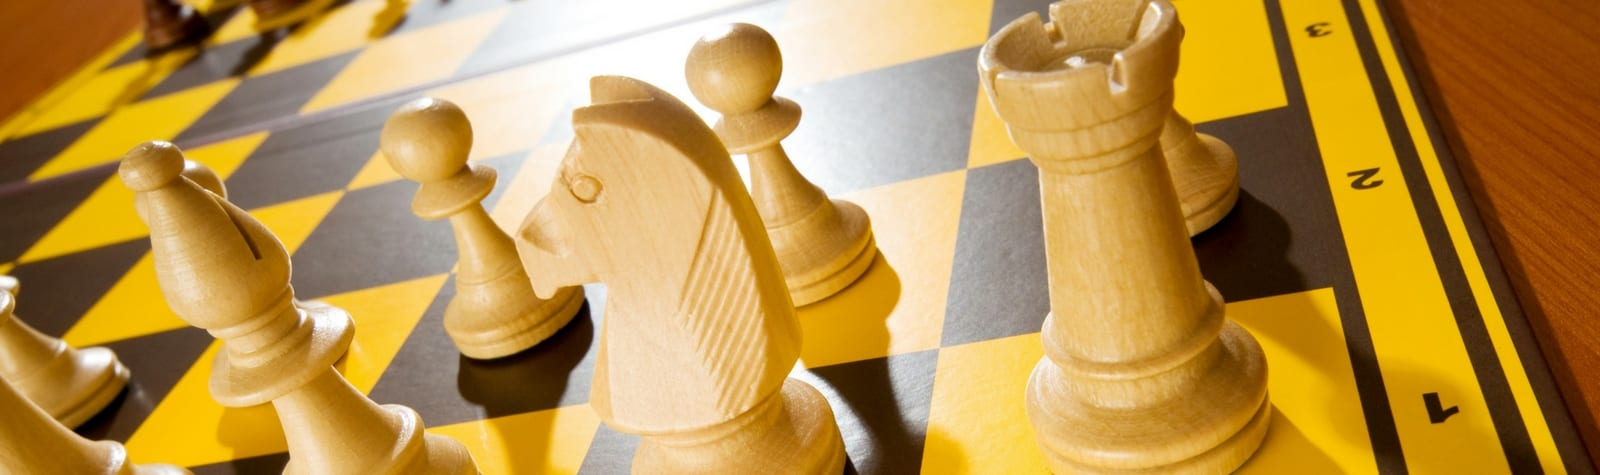 Important Lessons from Poker and Chess Games